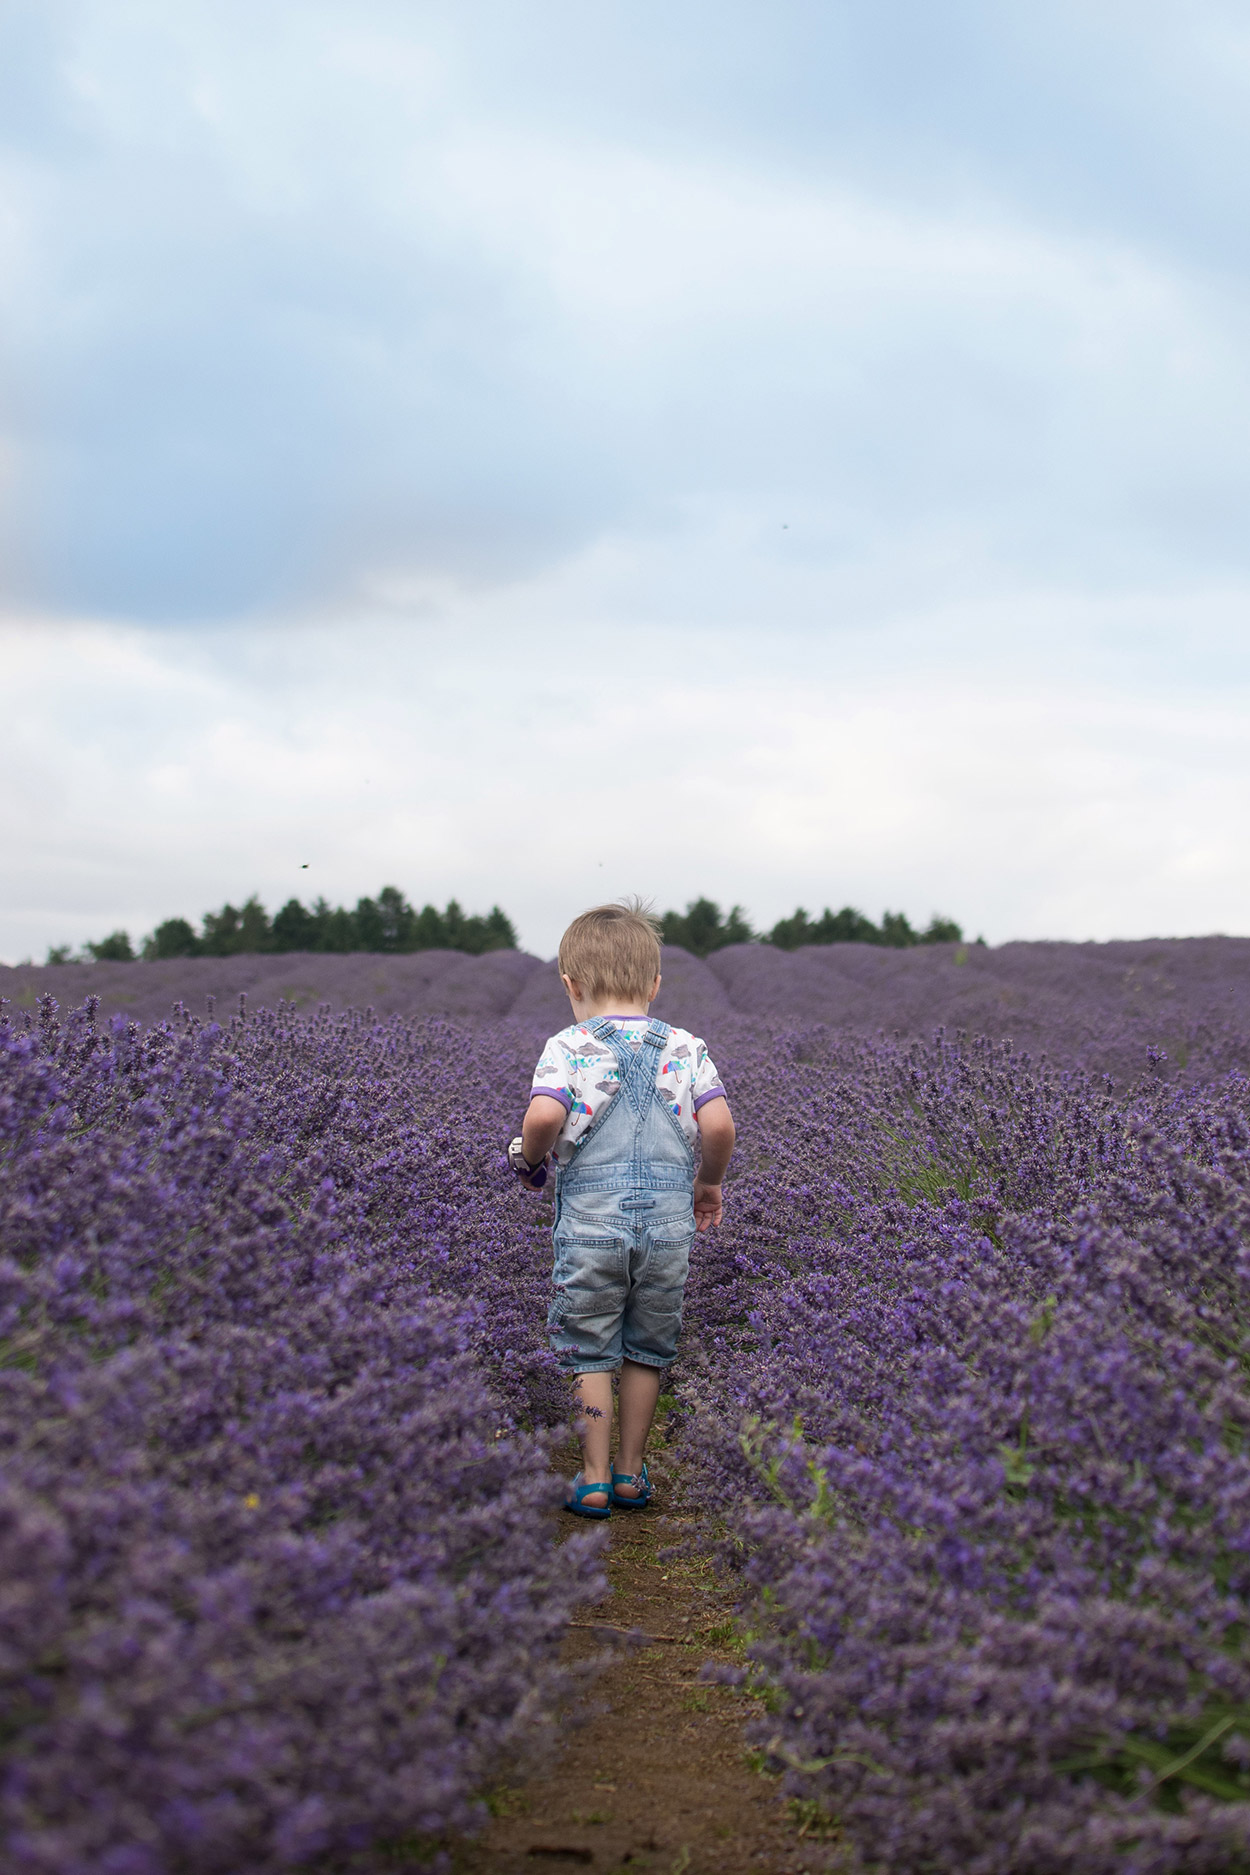 A trip to the Lavender Farm - Young boy wearing The Bunting Tree Brollies & Blizzards t-shirt standing amongst the lavender